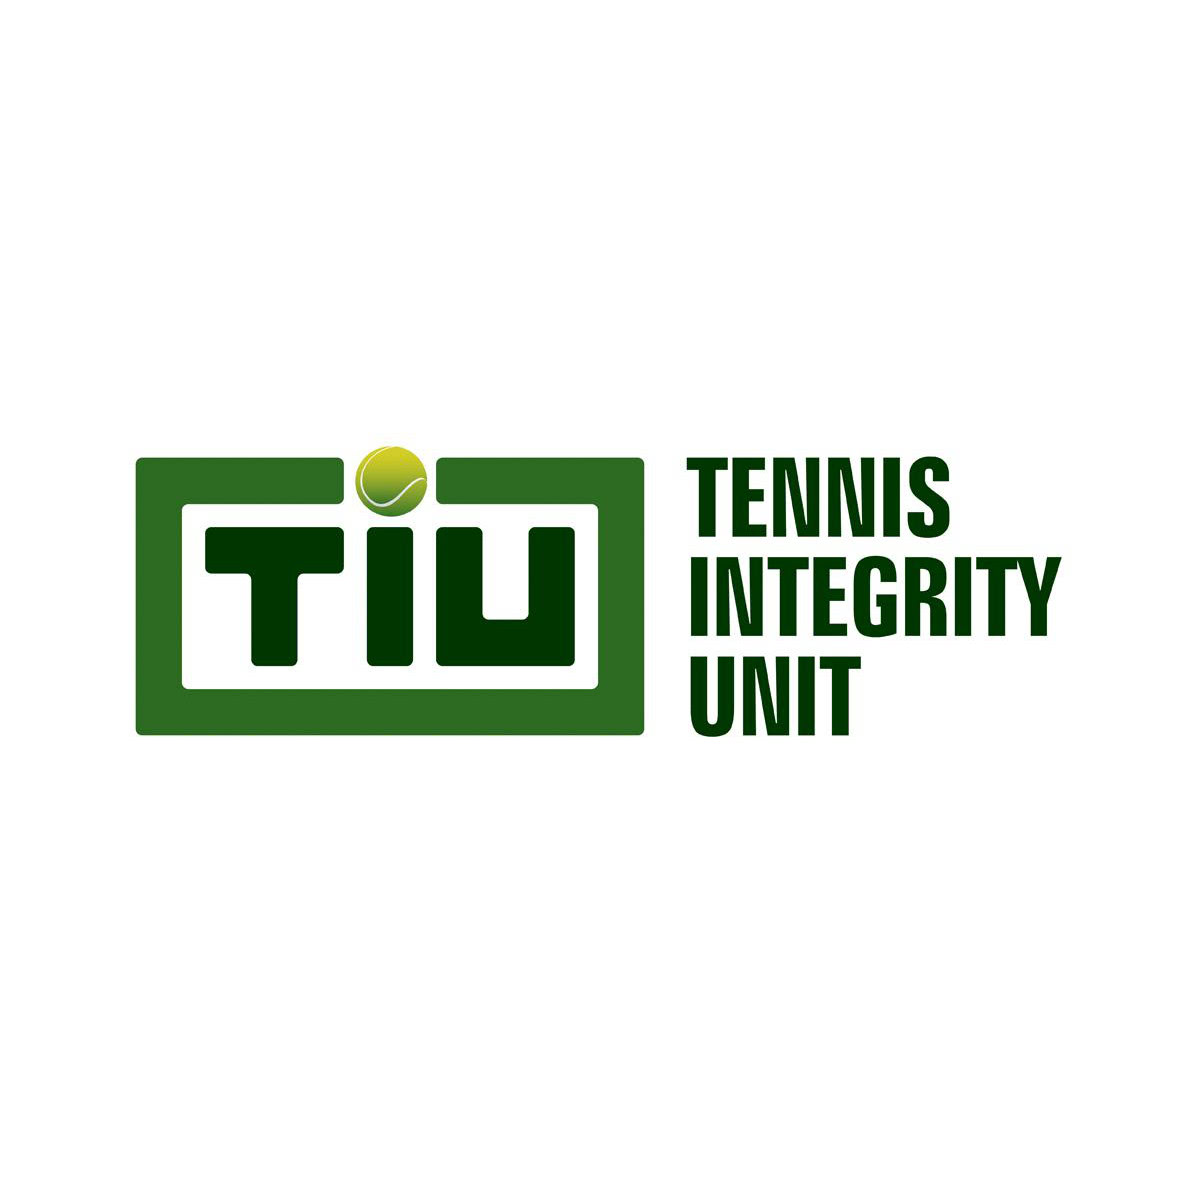 tennis integirty unit